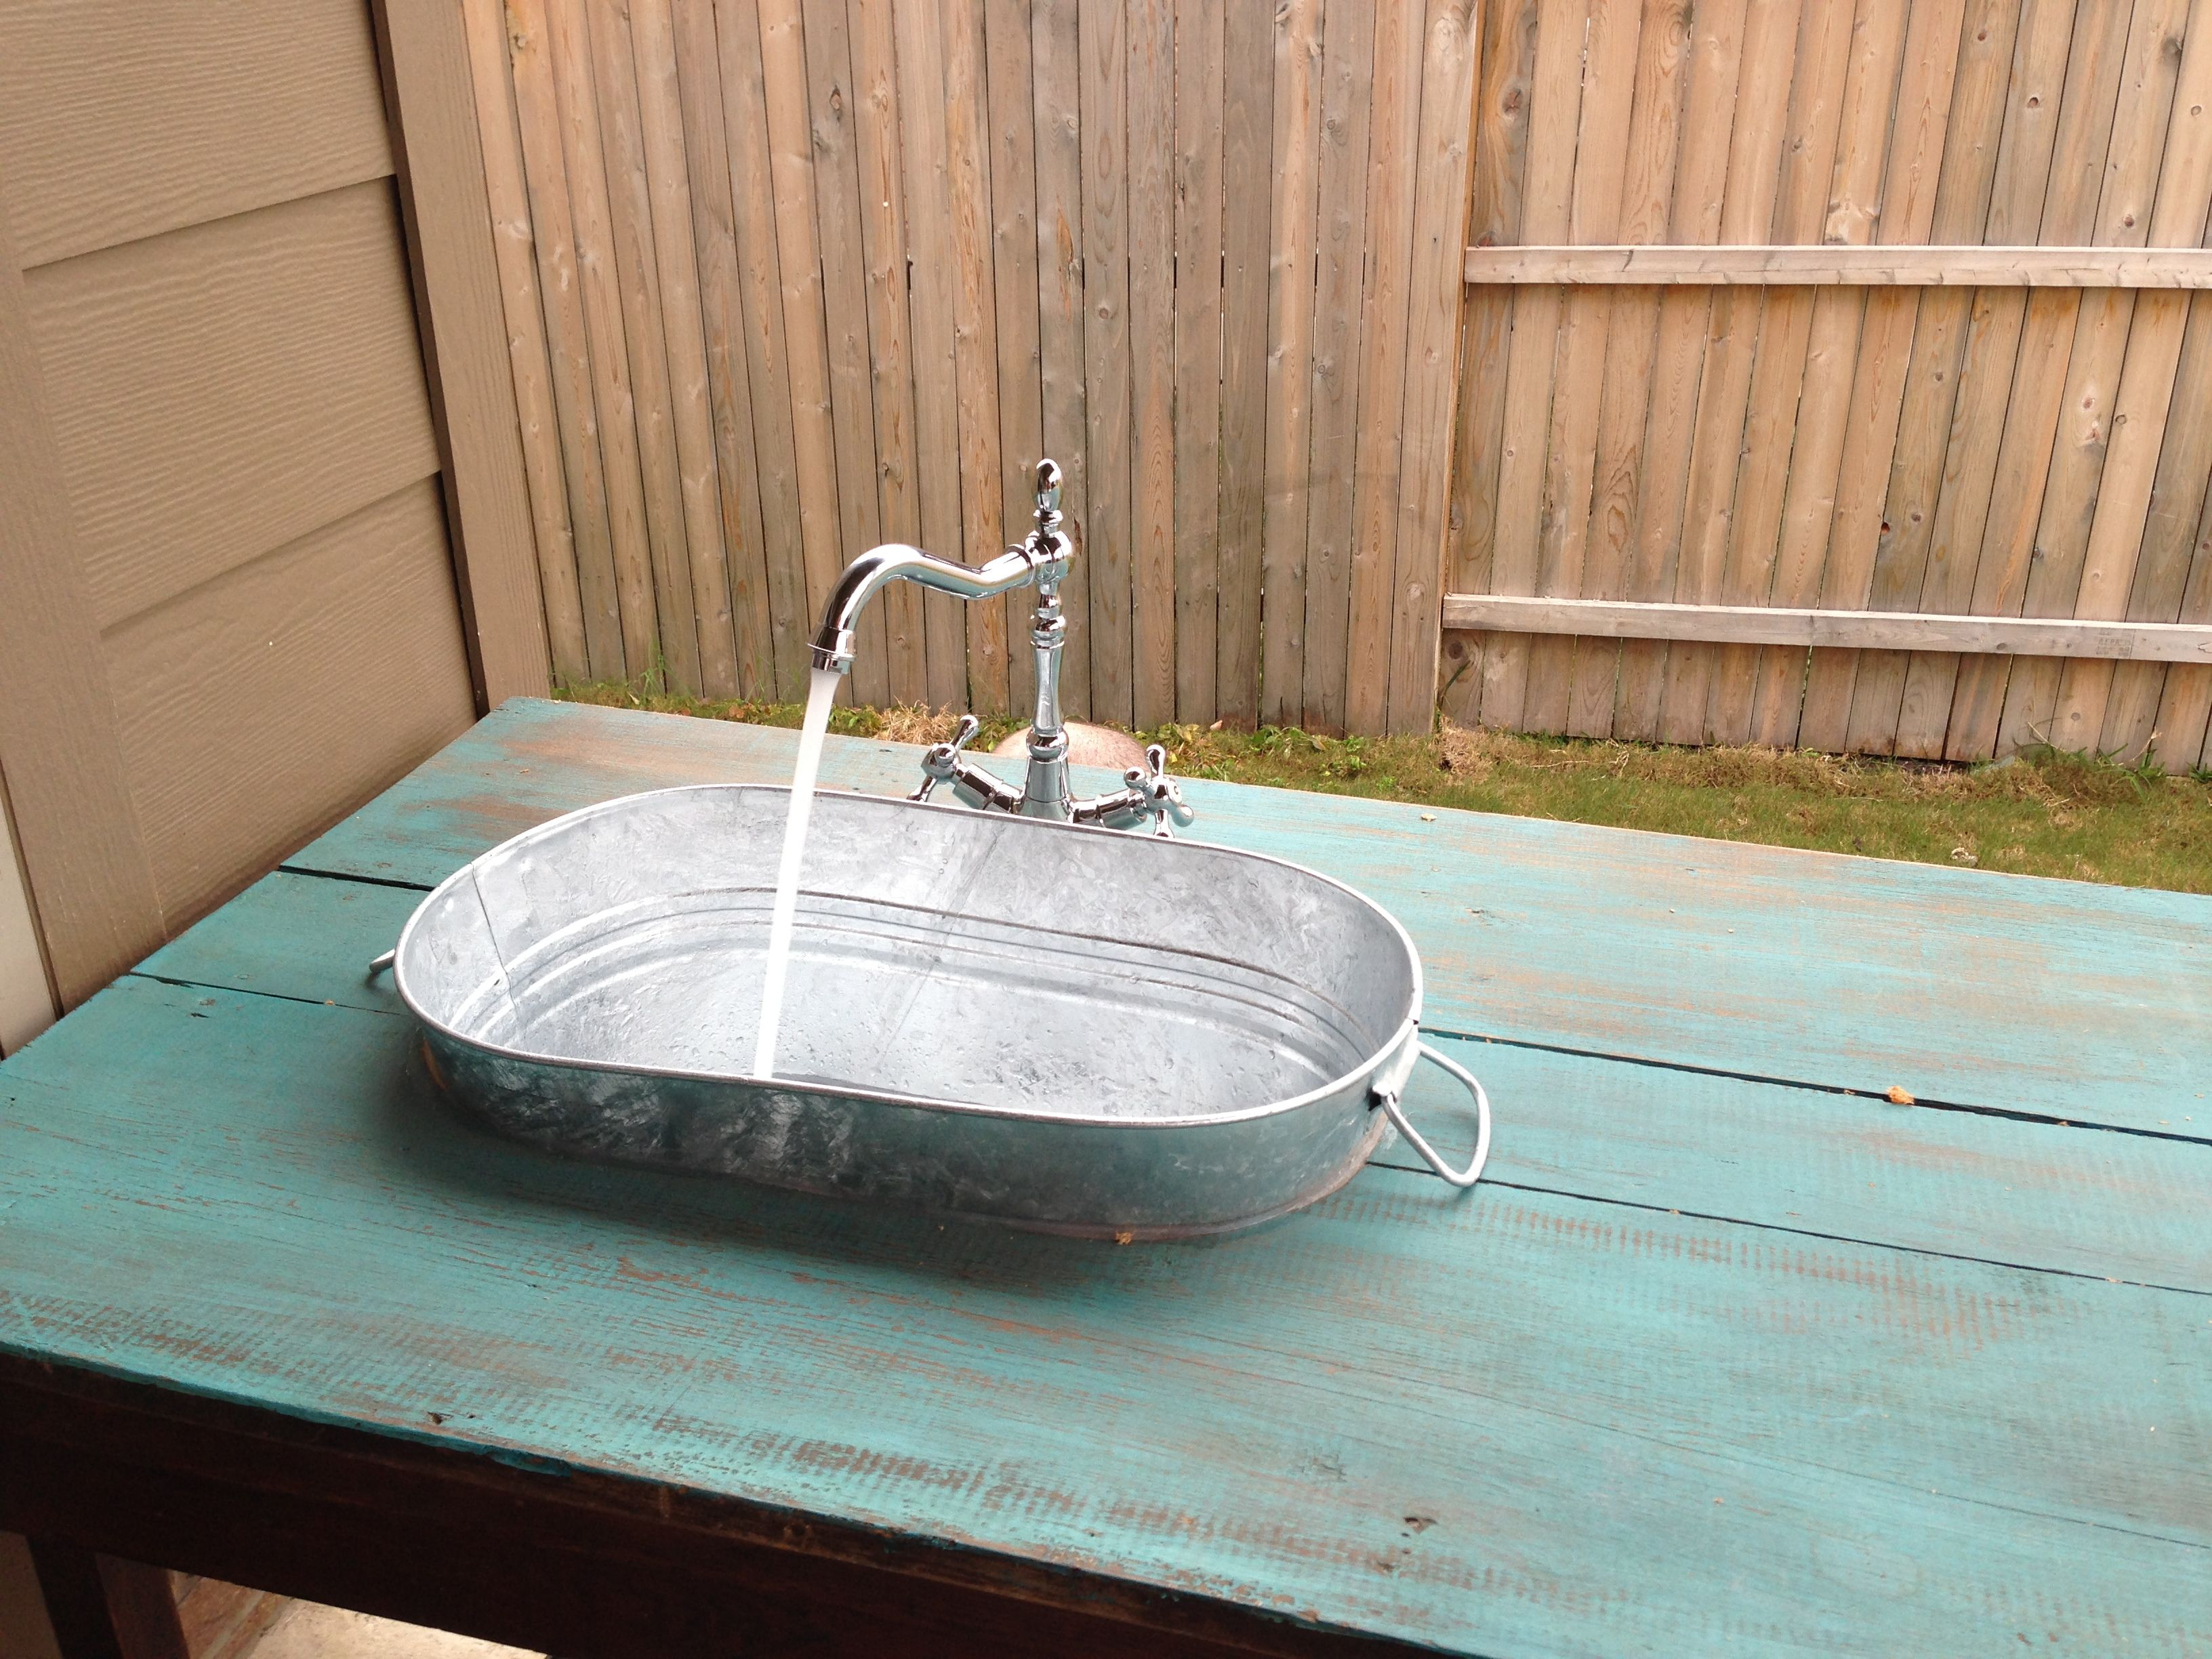 outdoor kitchen outdoor kitchen sink Now here s a great idea for an outdoor kitchen or garden Turn a wooden cable spool into a kitchen sink to make your outdoor dinners and gardening